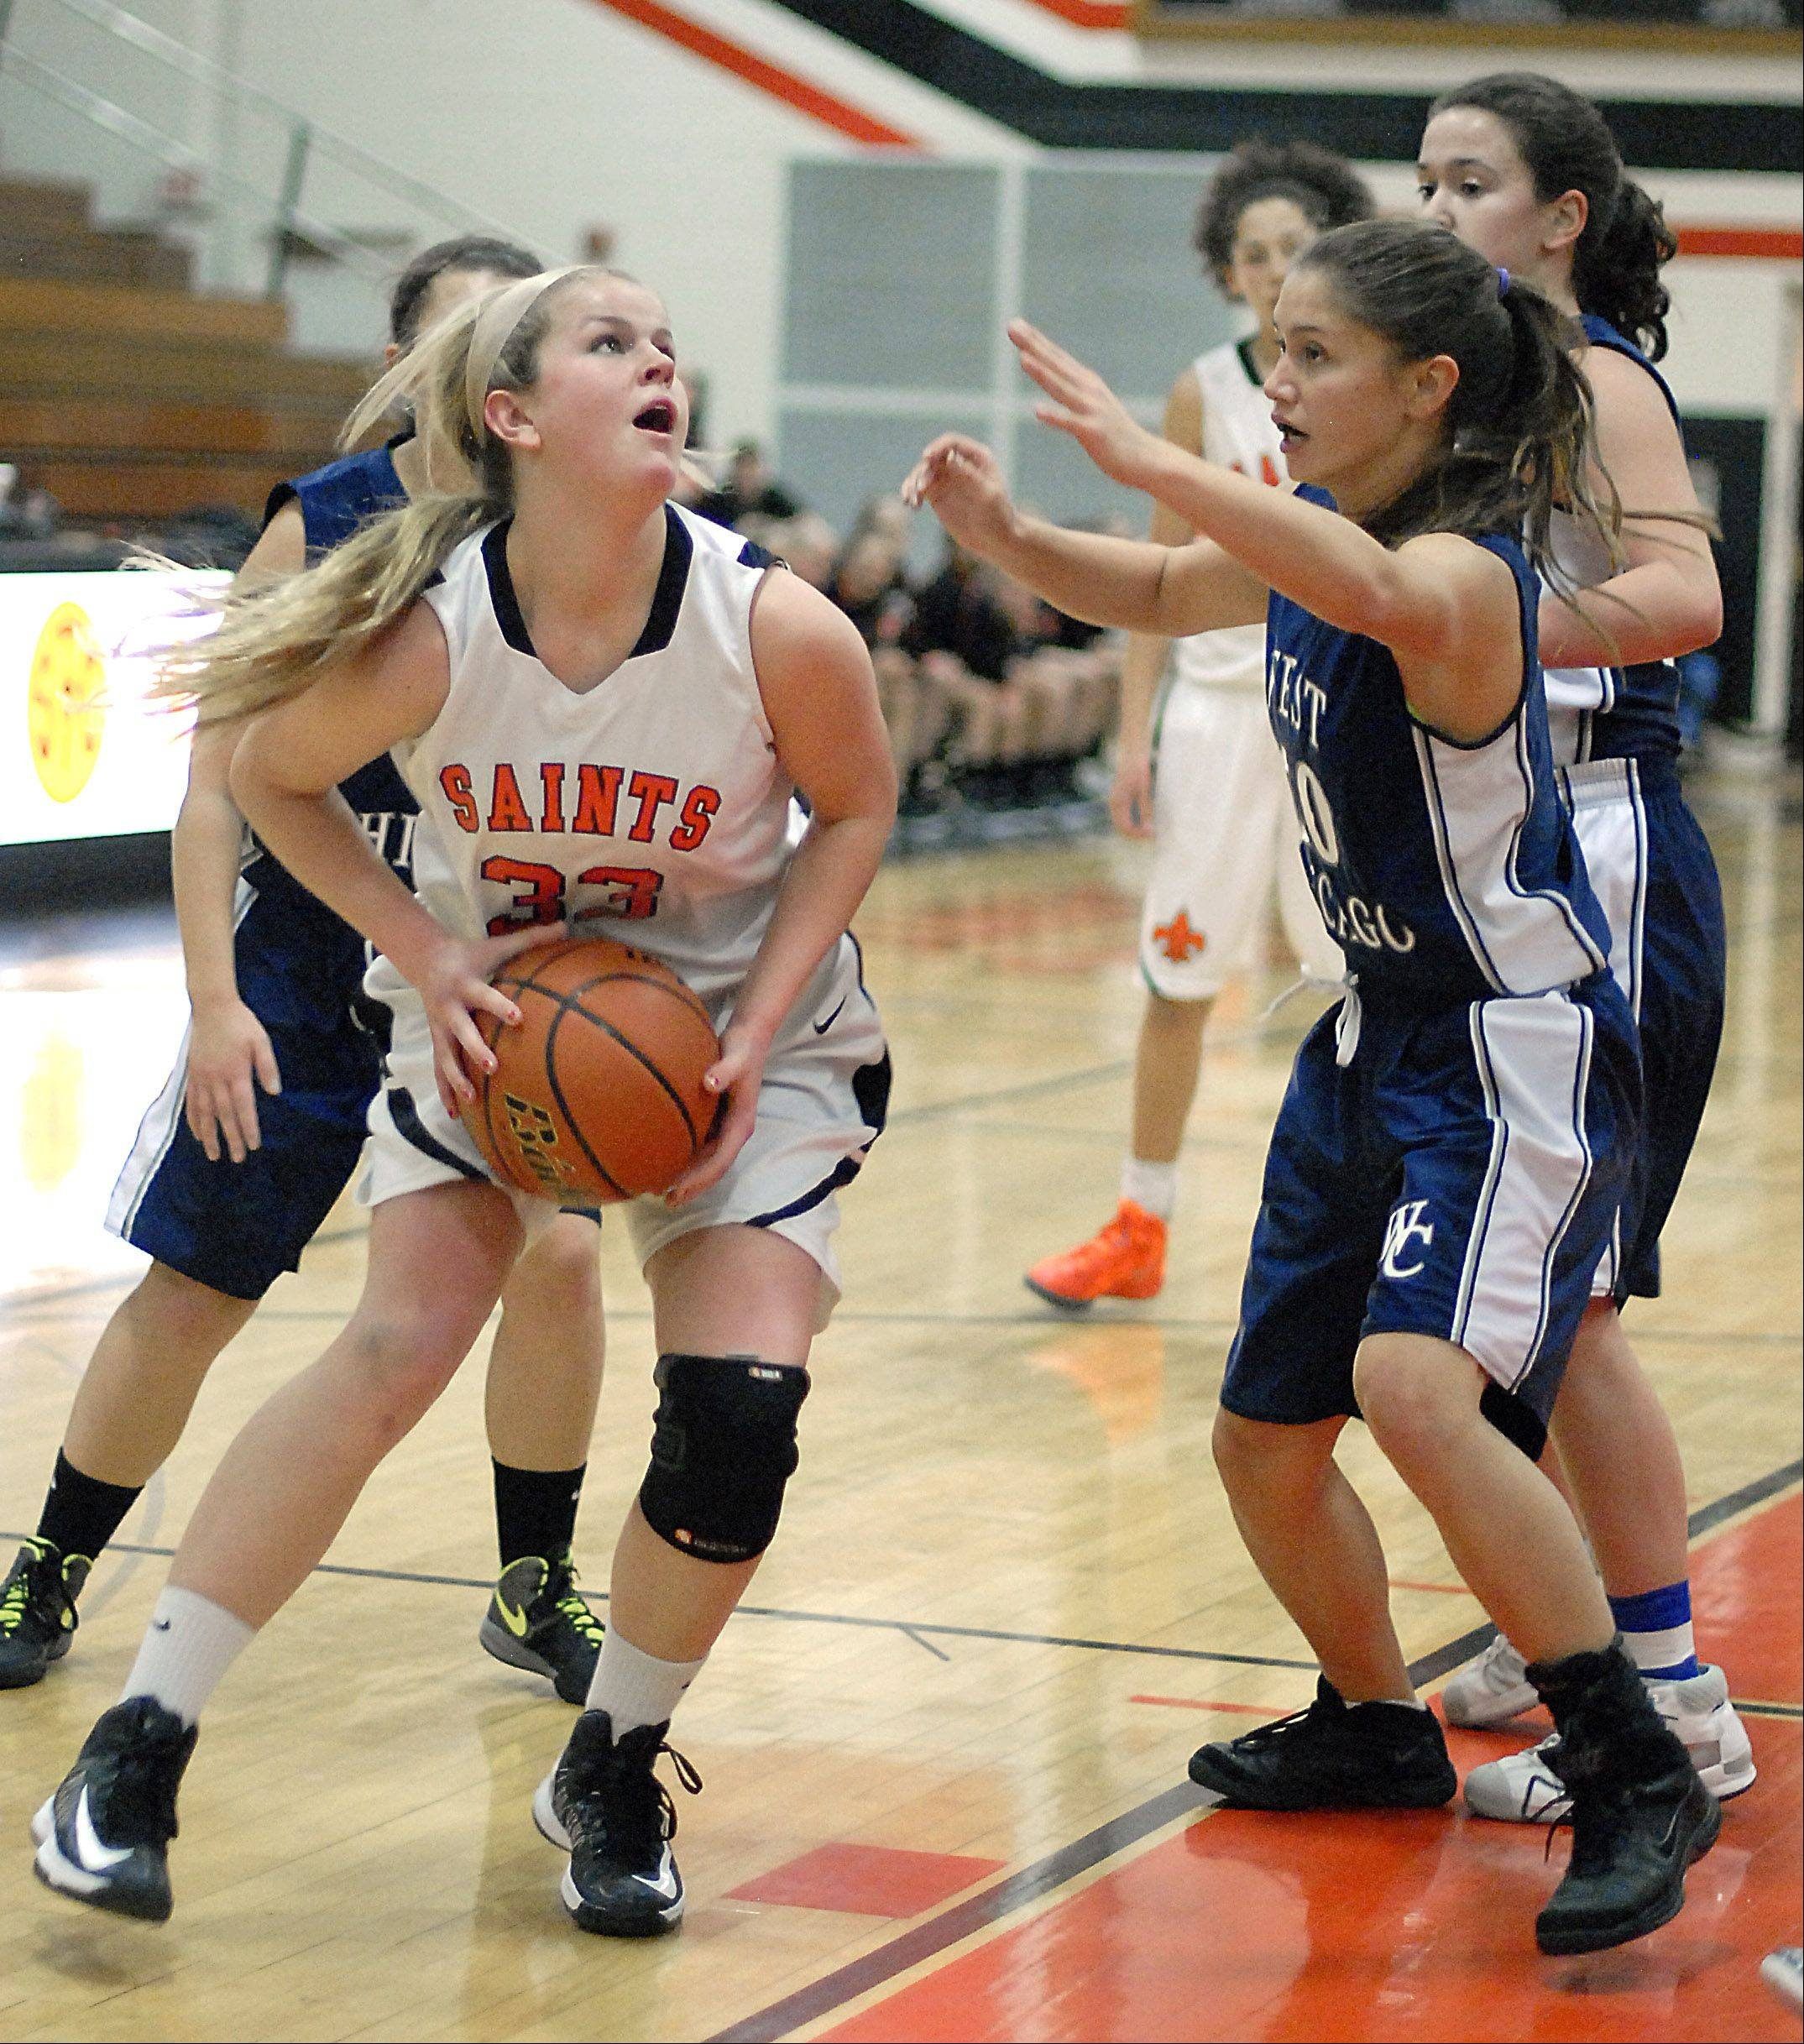 St. Charles East's Hannah Nowling looks to shoot over West Chicago's Amanda Gosbeth.